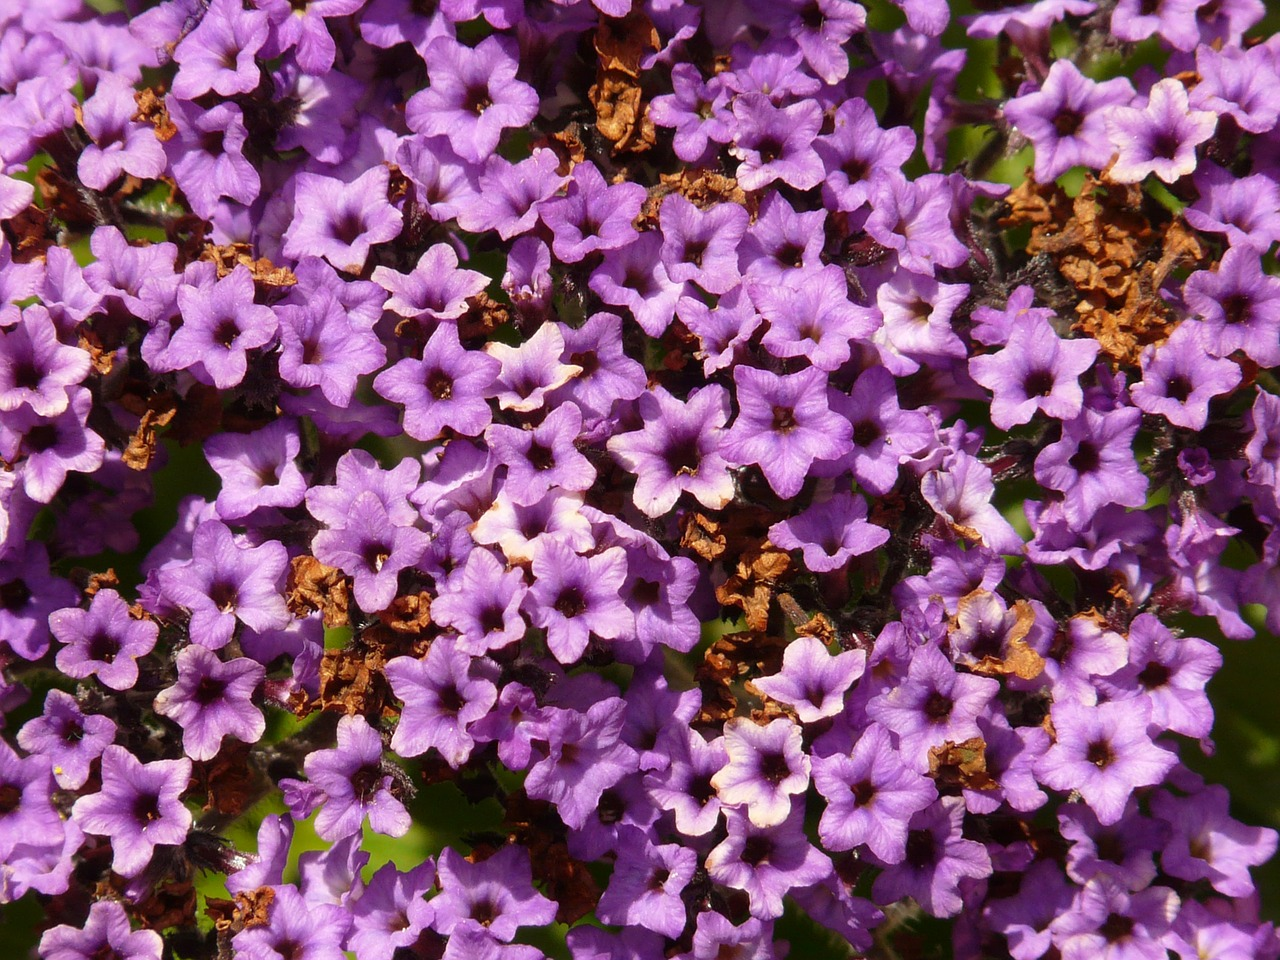 vanilla flower heliotrope solstice free photo